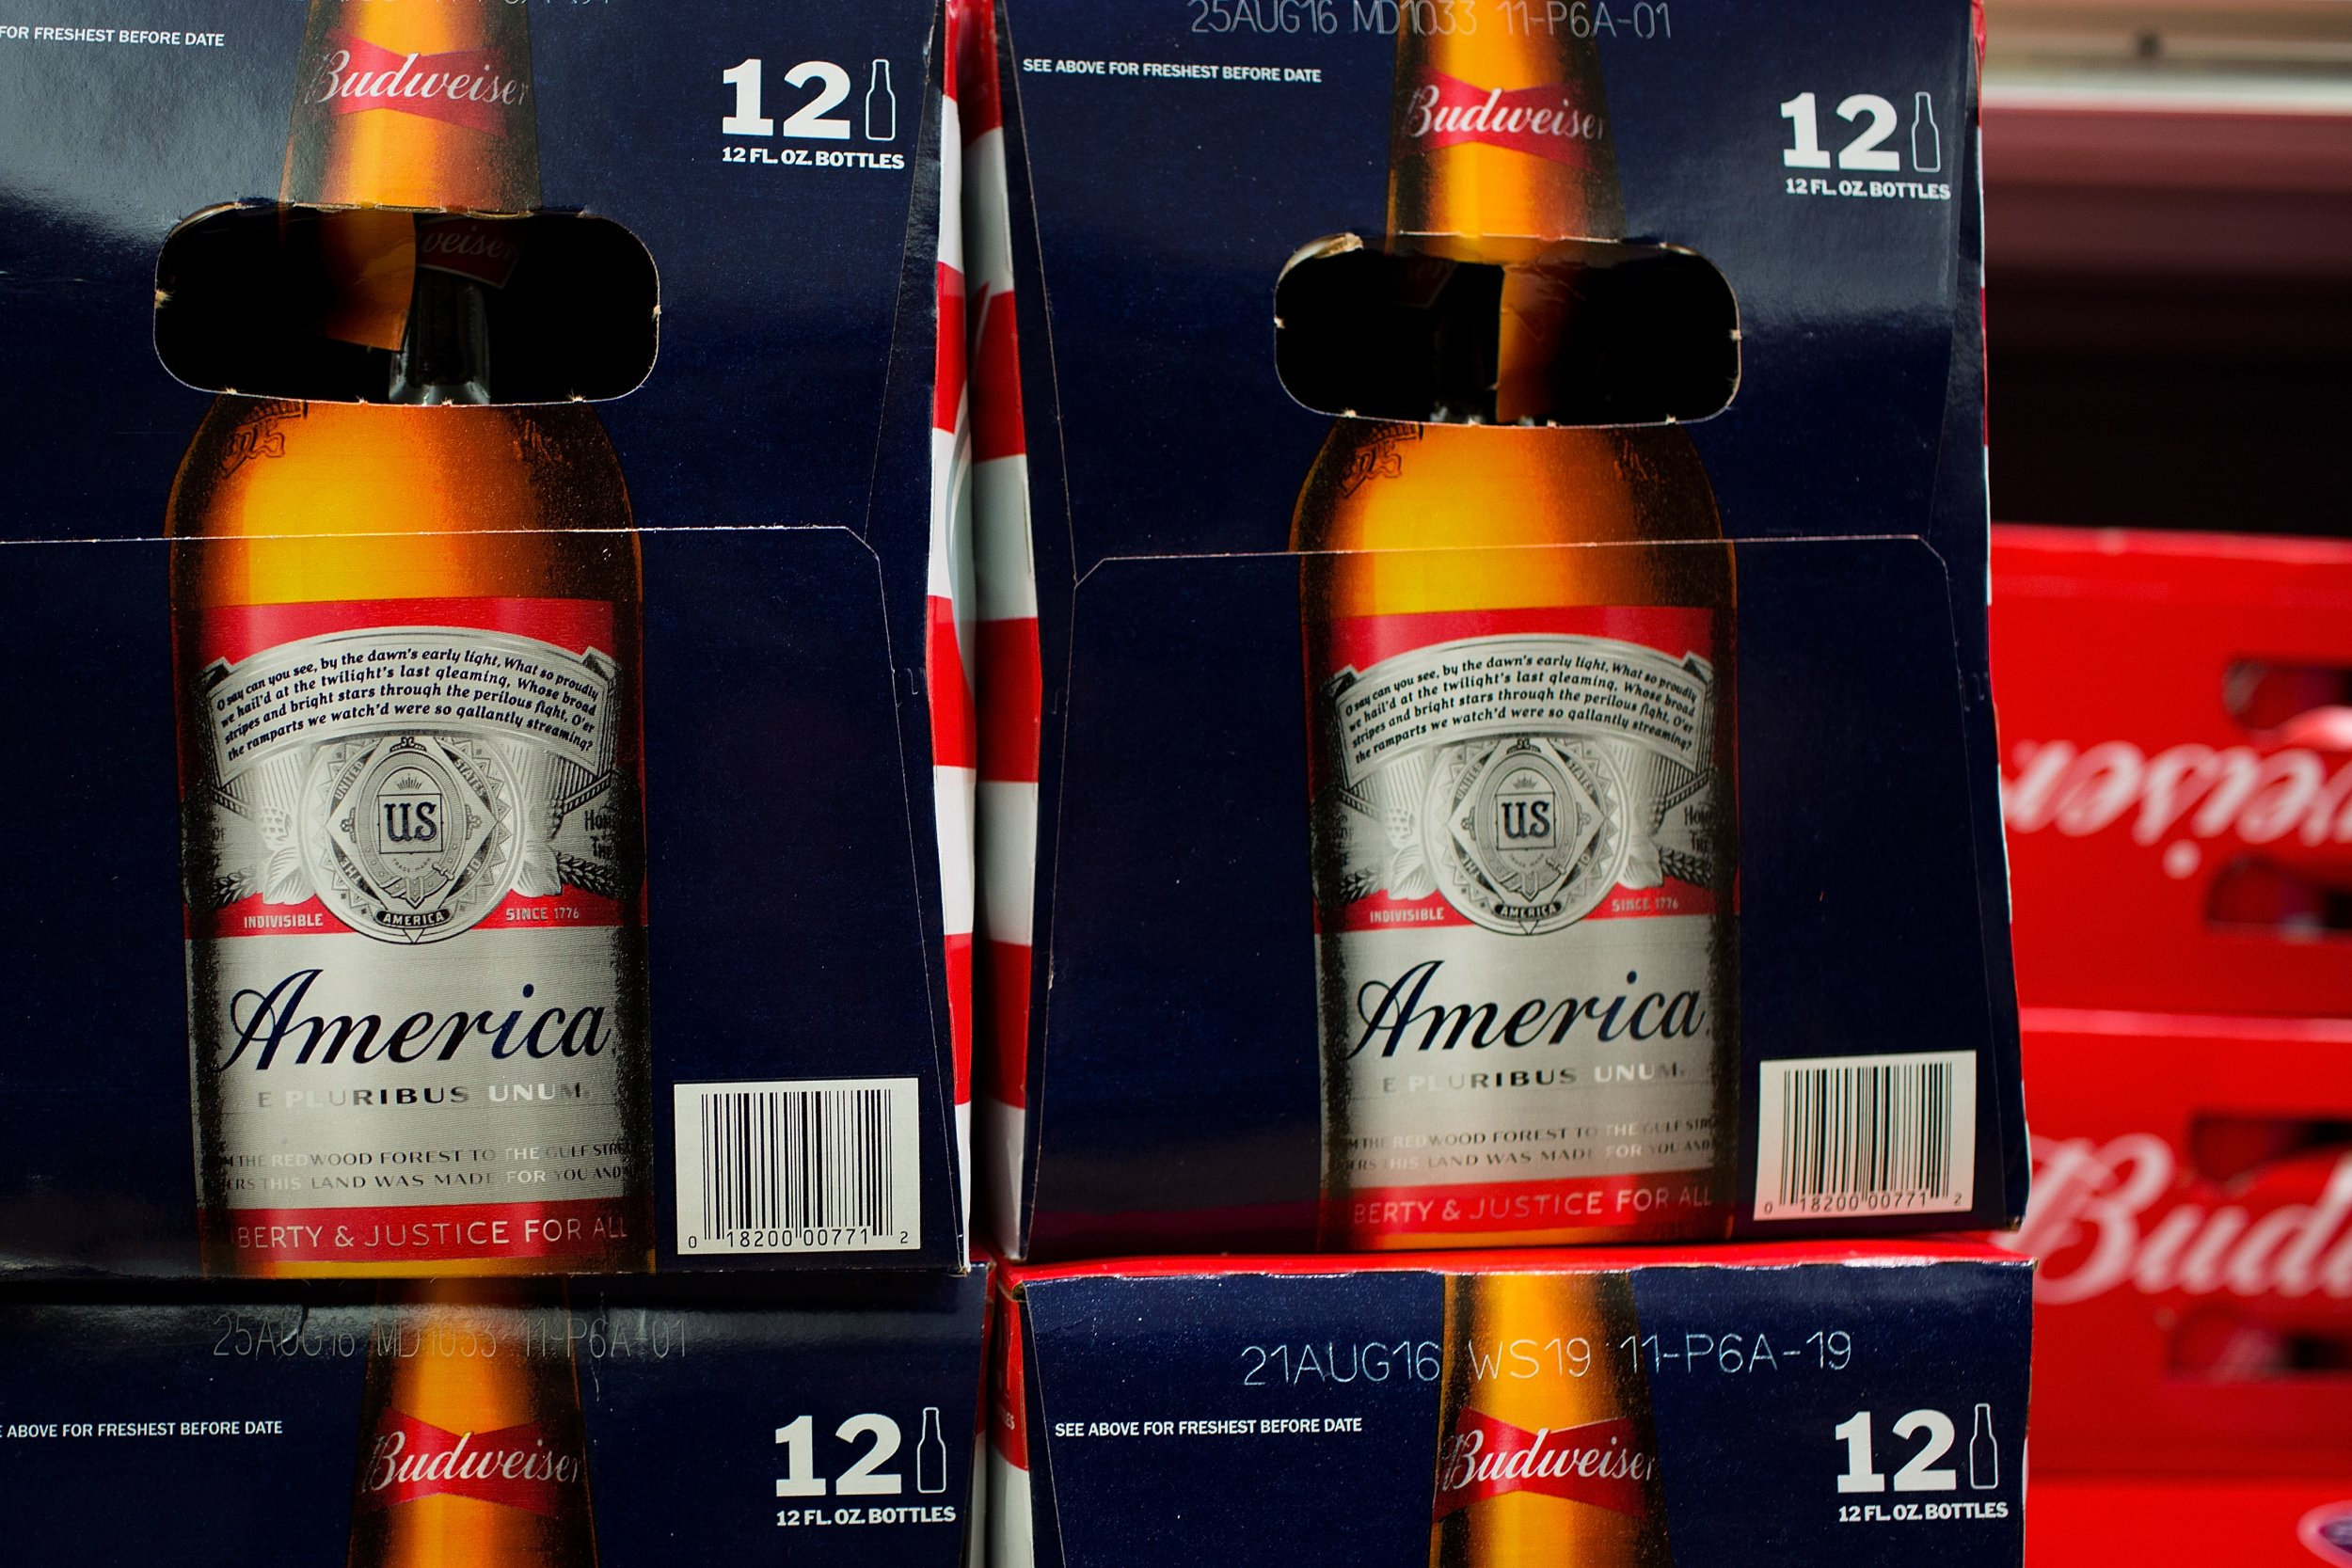 Mission to Mars: Budweiser Sending Barley to Red Planet to Make Outer Space Beer for Humans